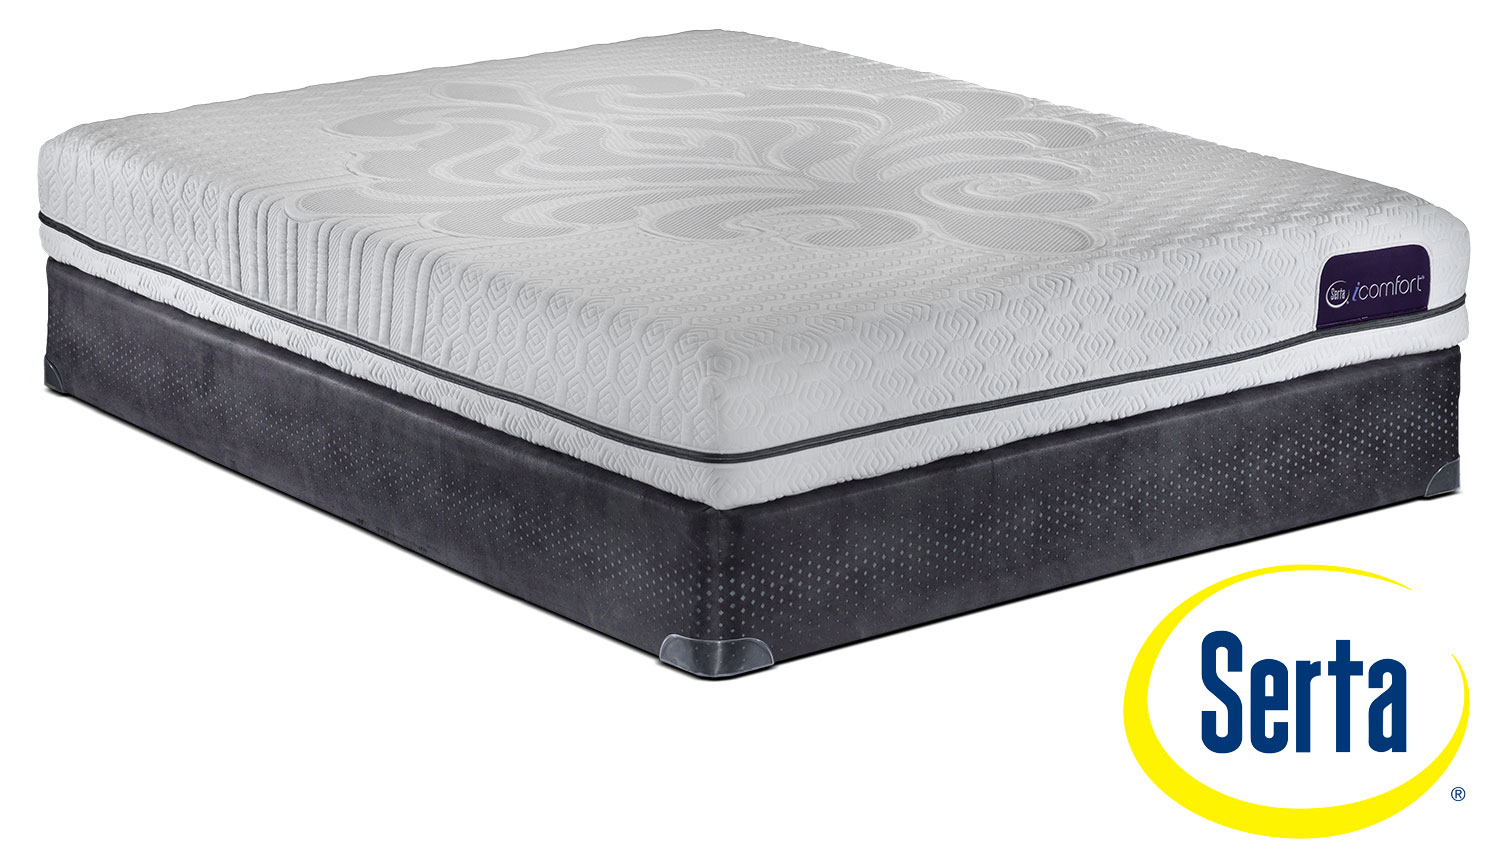 Serta icomfort eco levity firm queen mattress and boxspring set leon 39 s Queen bed and mattress